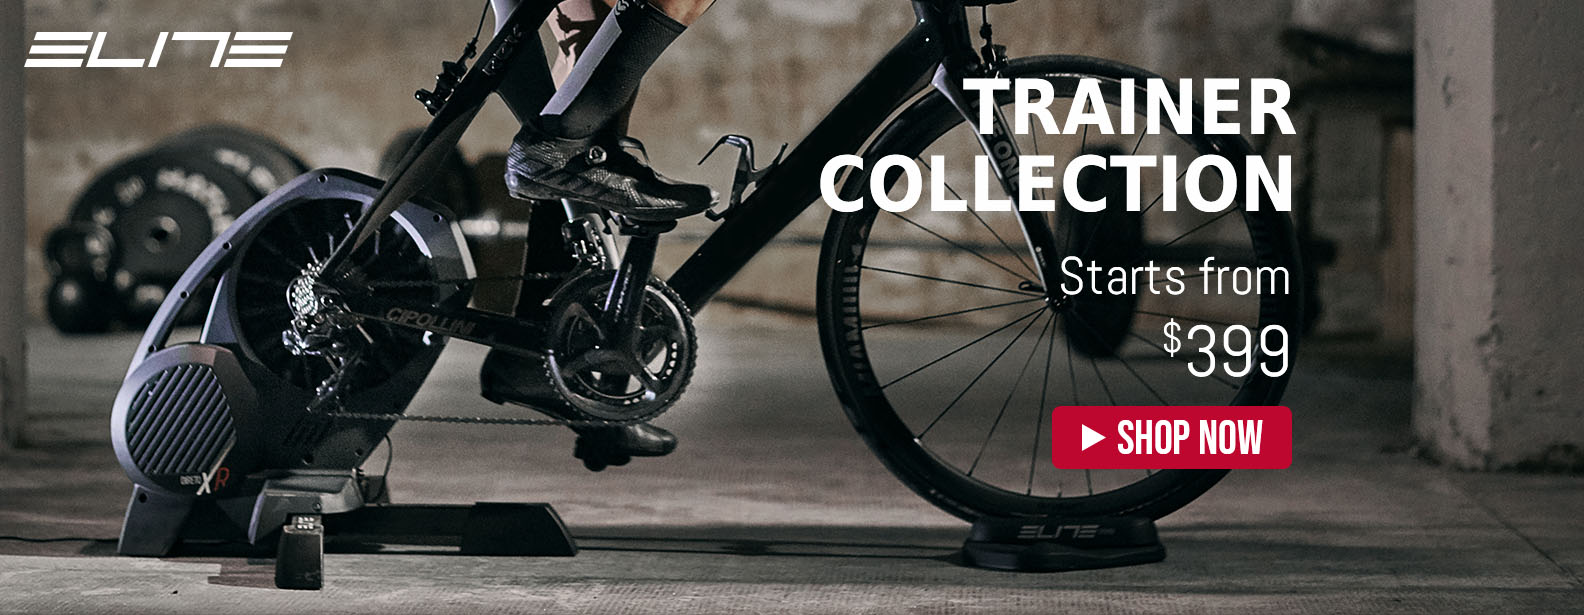 Elite Trainer New Collection